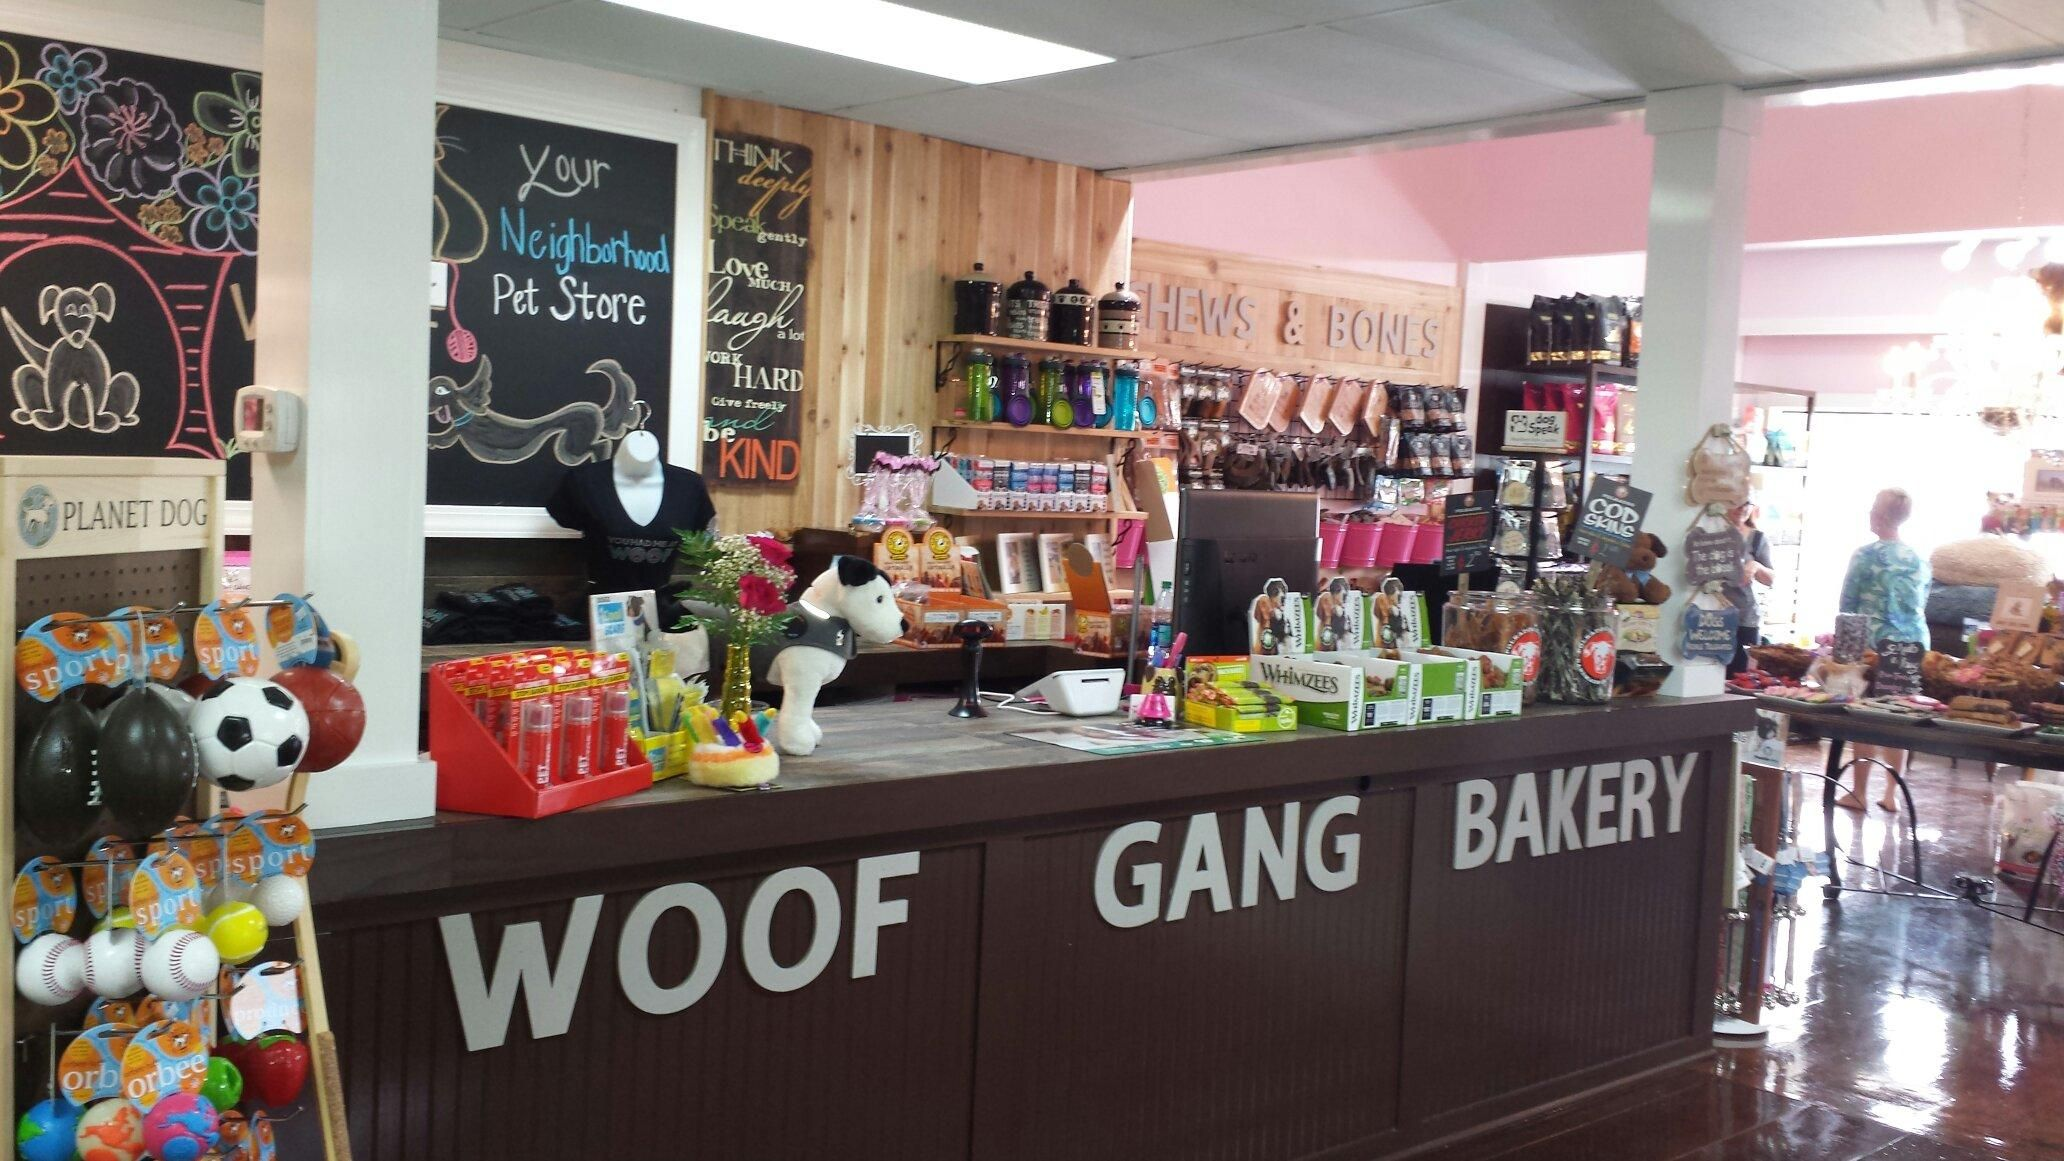 No work today stop by woof gang bakery mount pleasant and